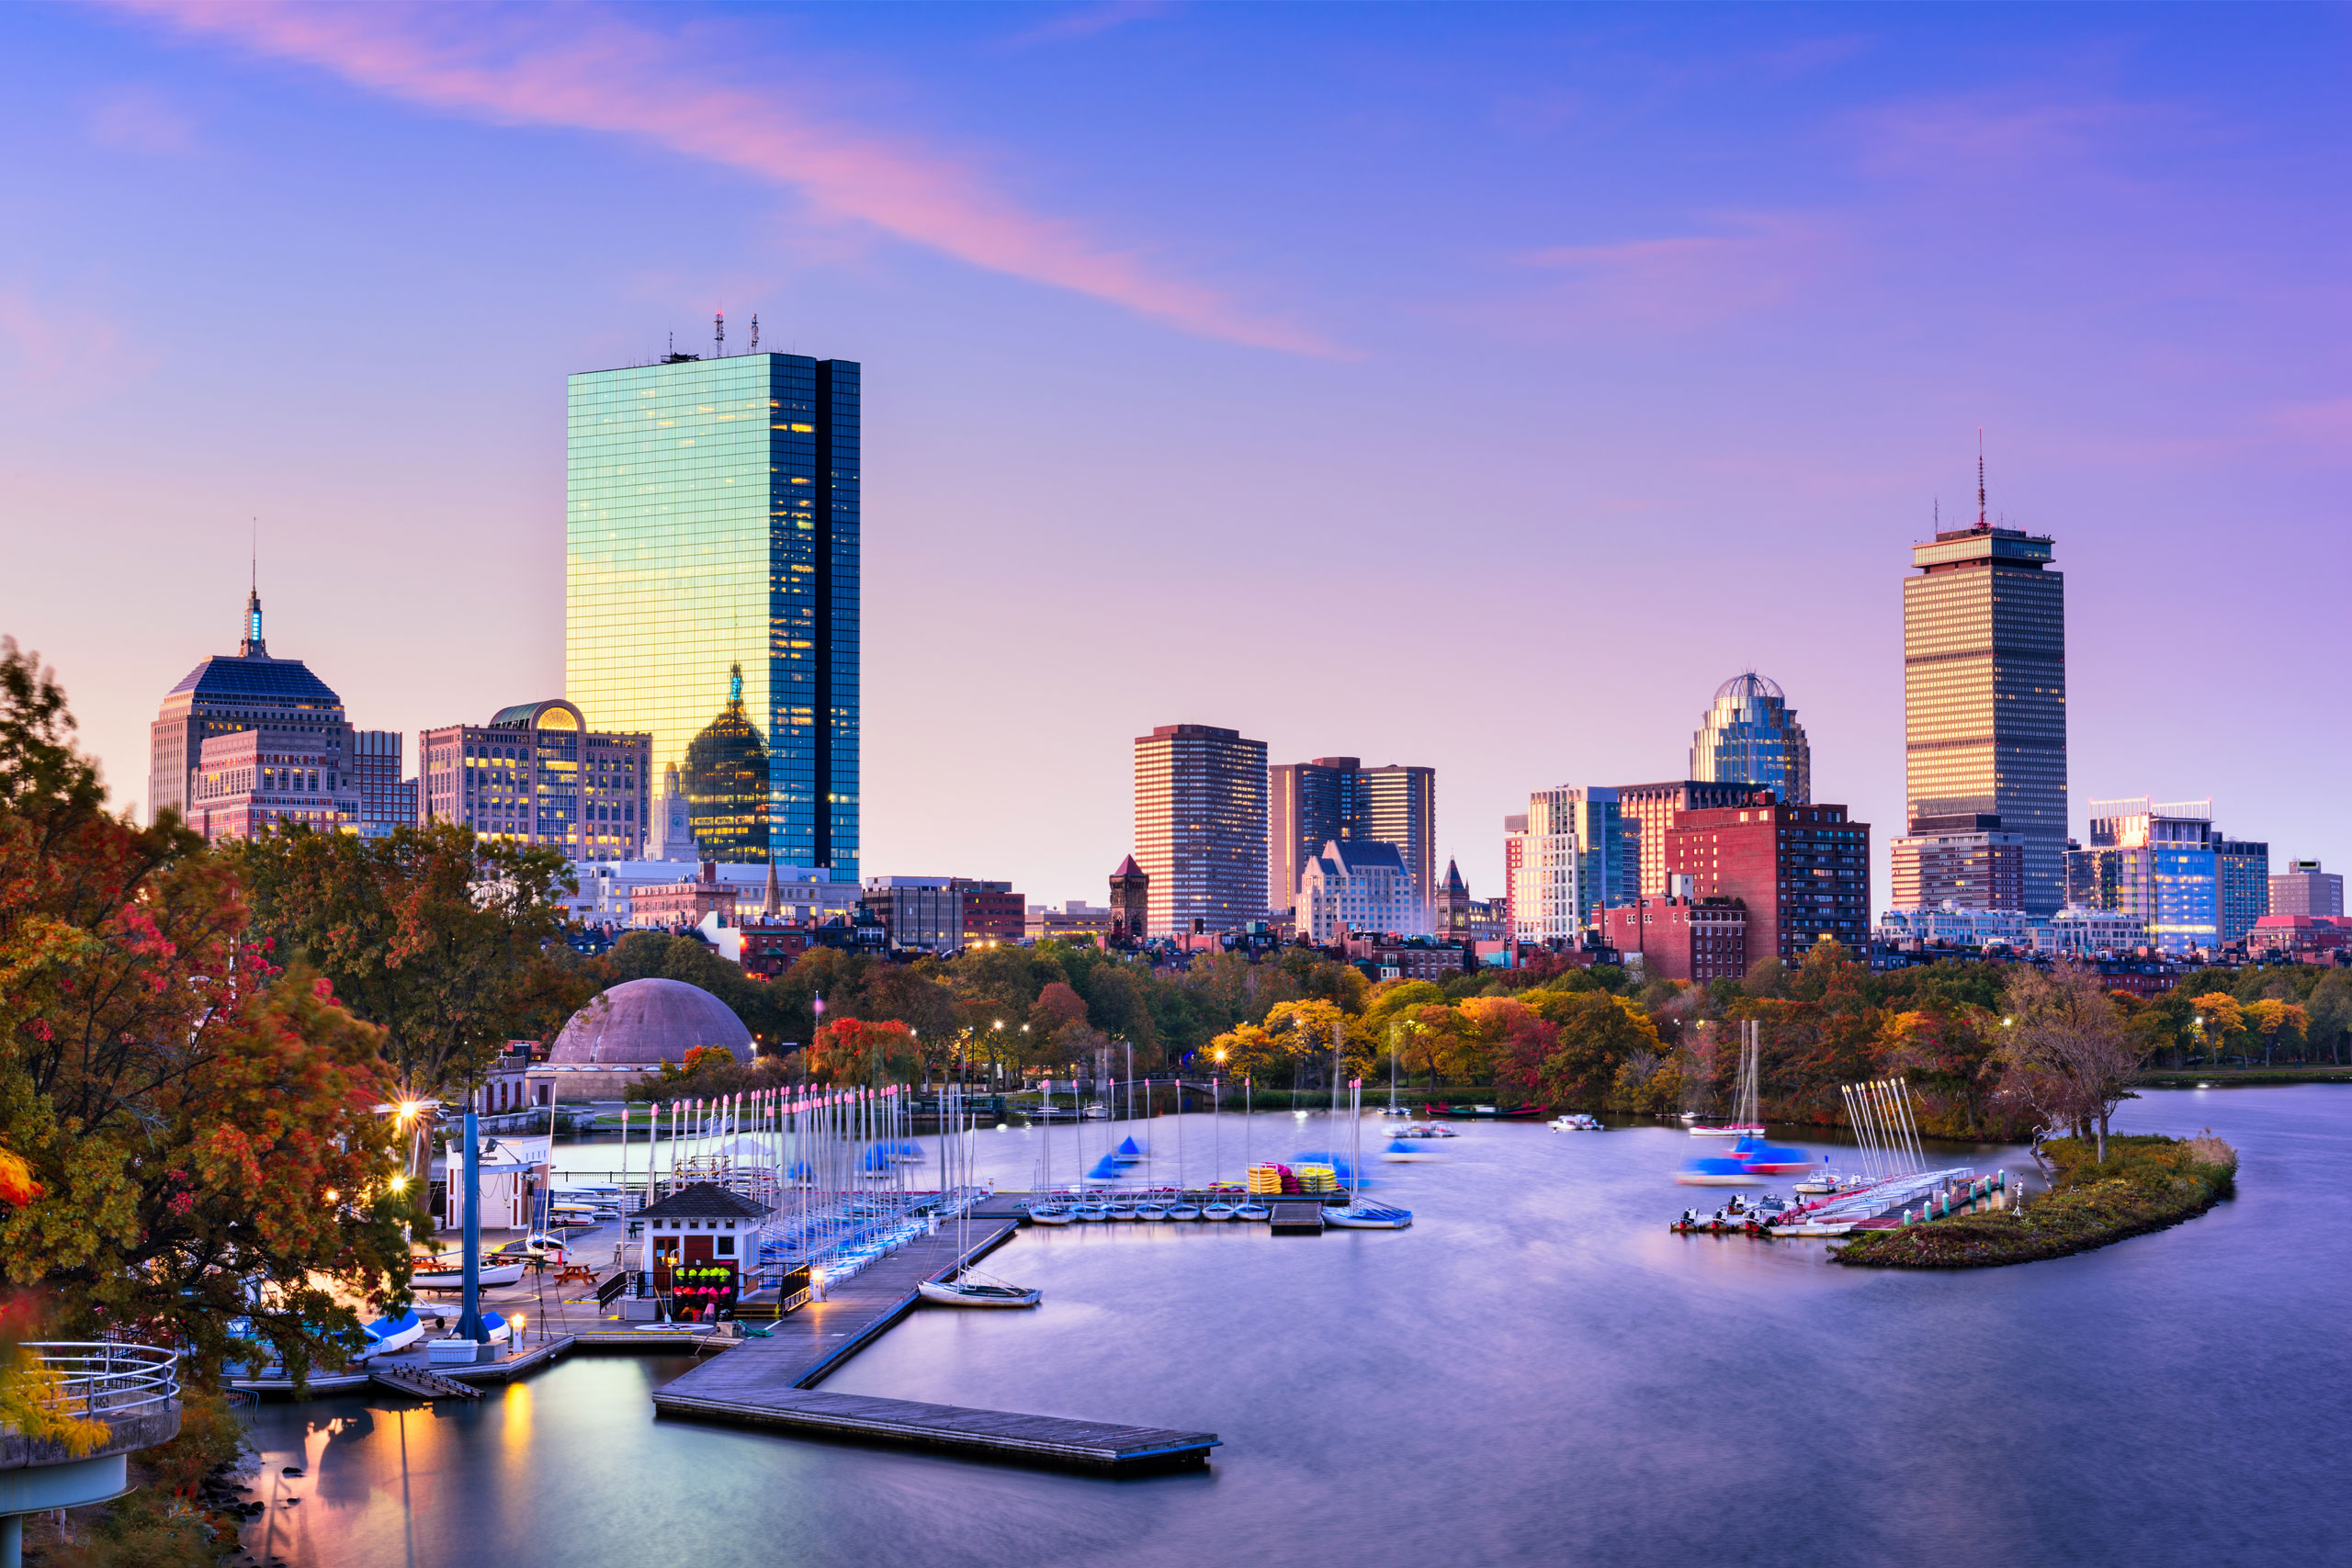 Boston Skyline. We have dream job opportunities in Toulouse, France and Boston, MA